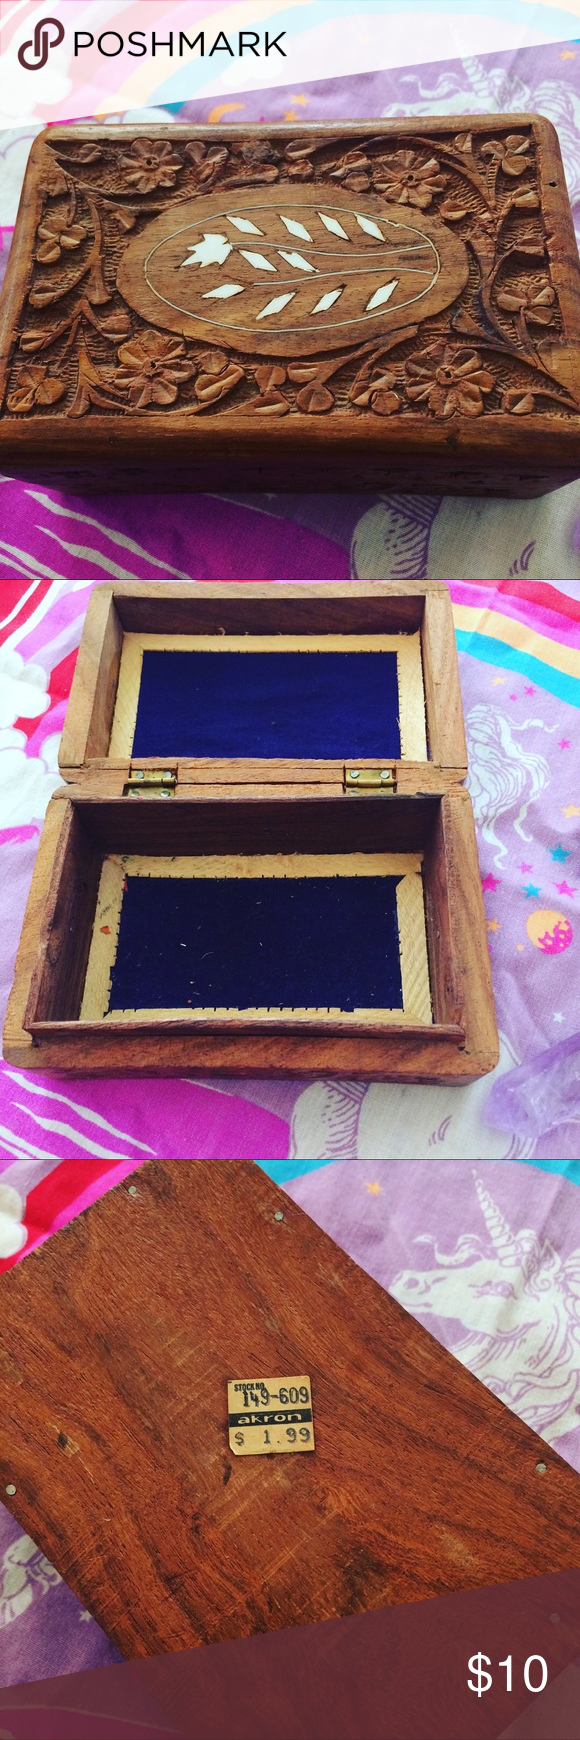 Vintage Wooden box for Tarot or trinkets Vintage wooden box to hold Tarot decks or crystals or whatever you like! Other